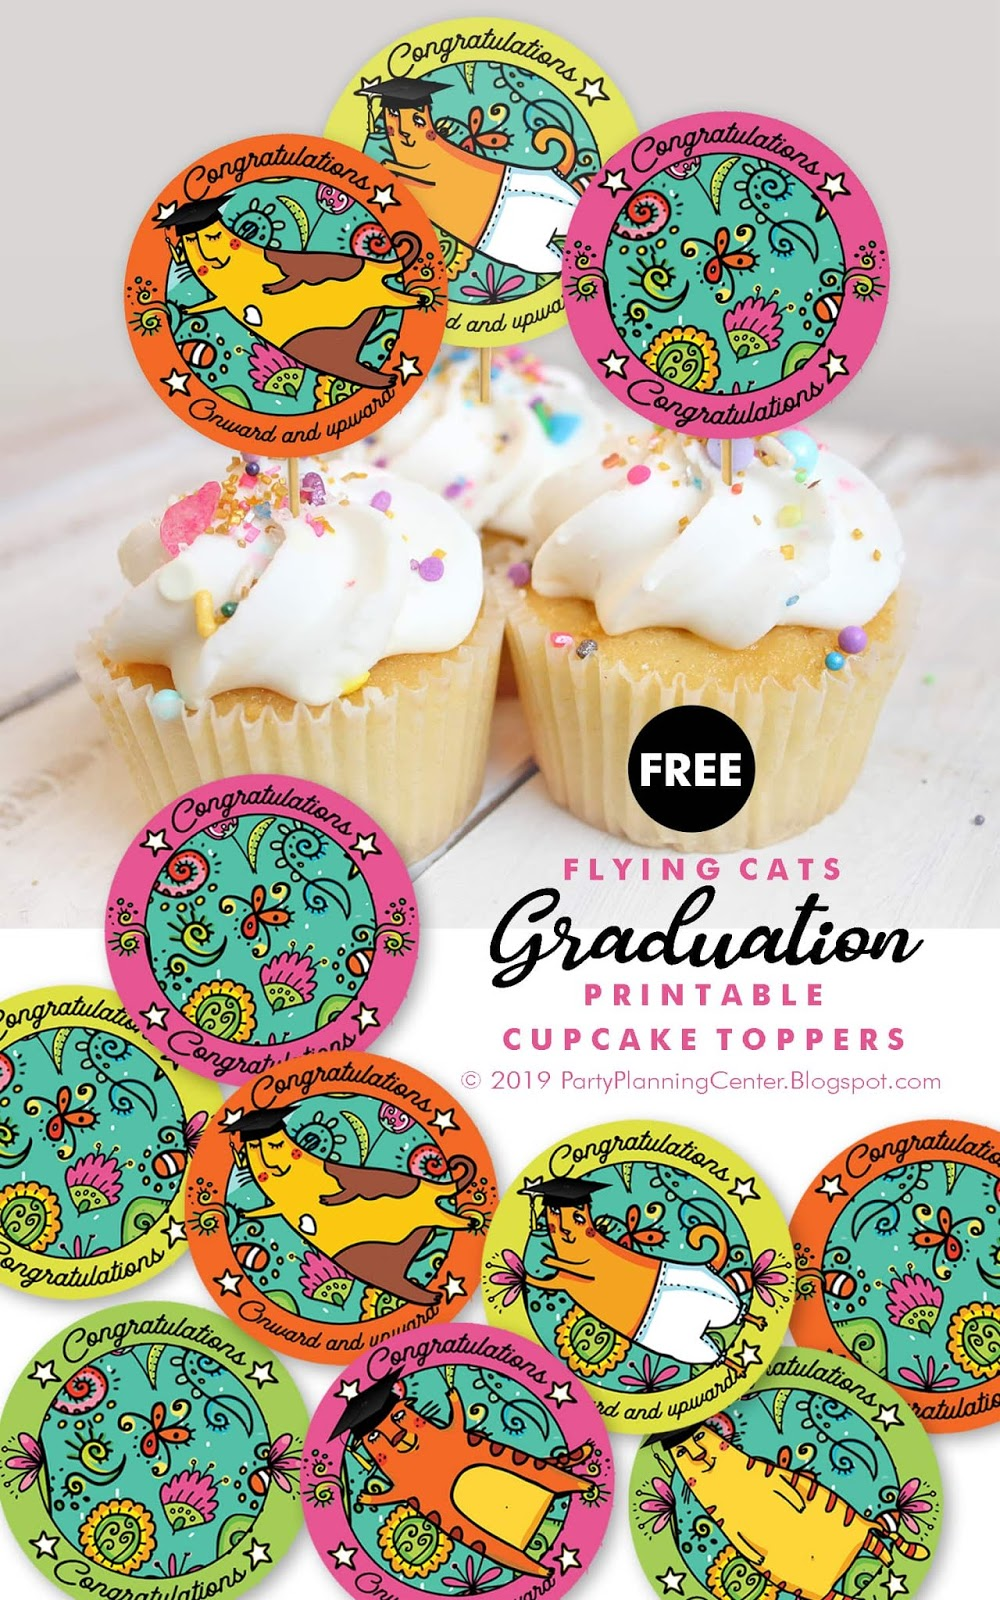 cupcake toppers that can be used for graduation table decorations